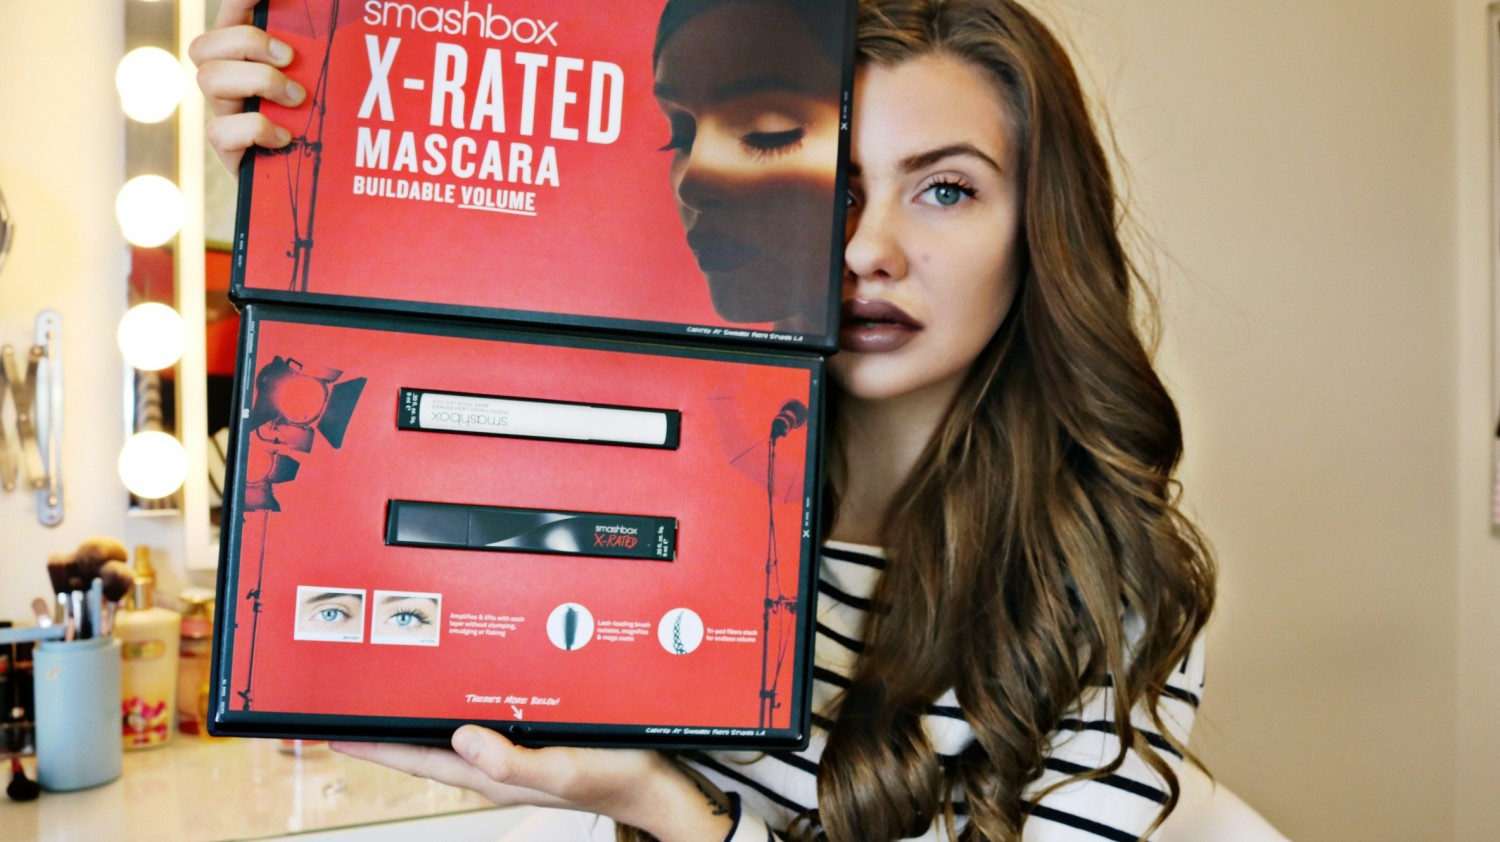 fie laursen smashbox